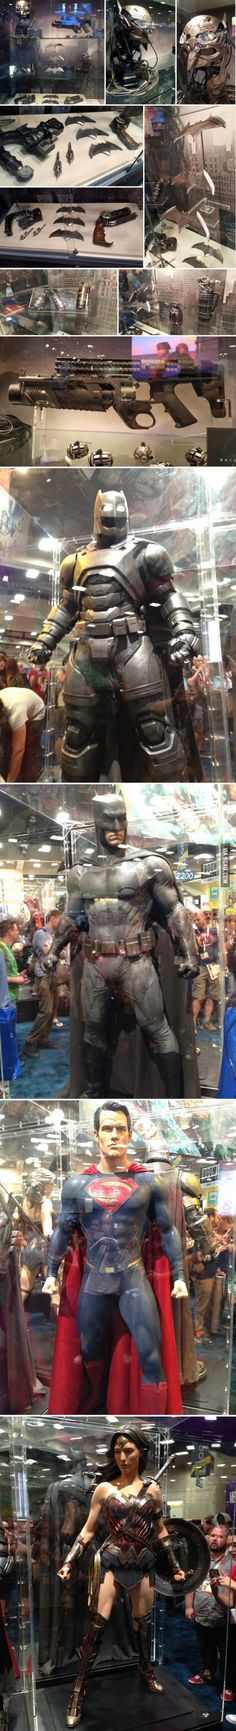 Comic Con 2015: The Dark Knight's Gadgets from 'Batman v. Superman'